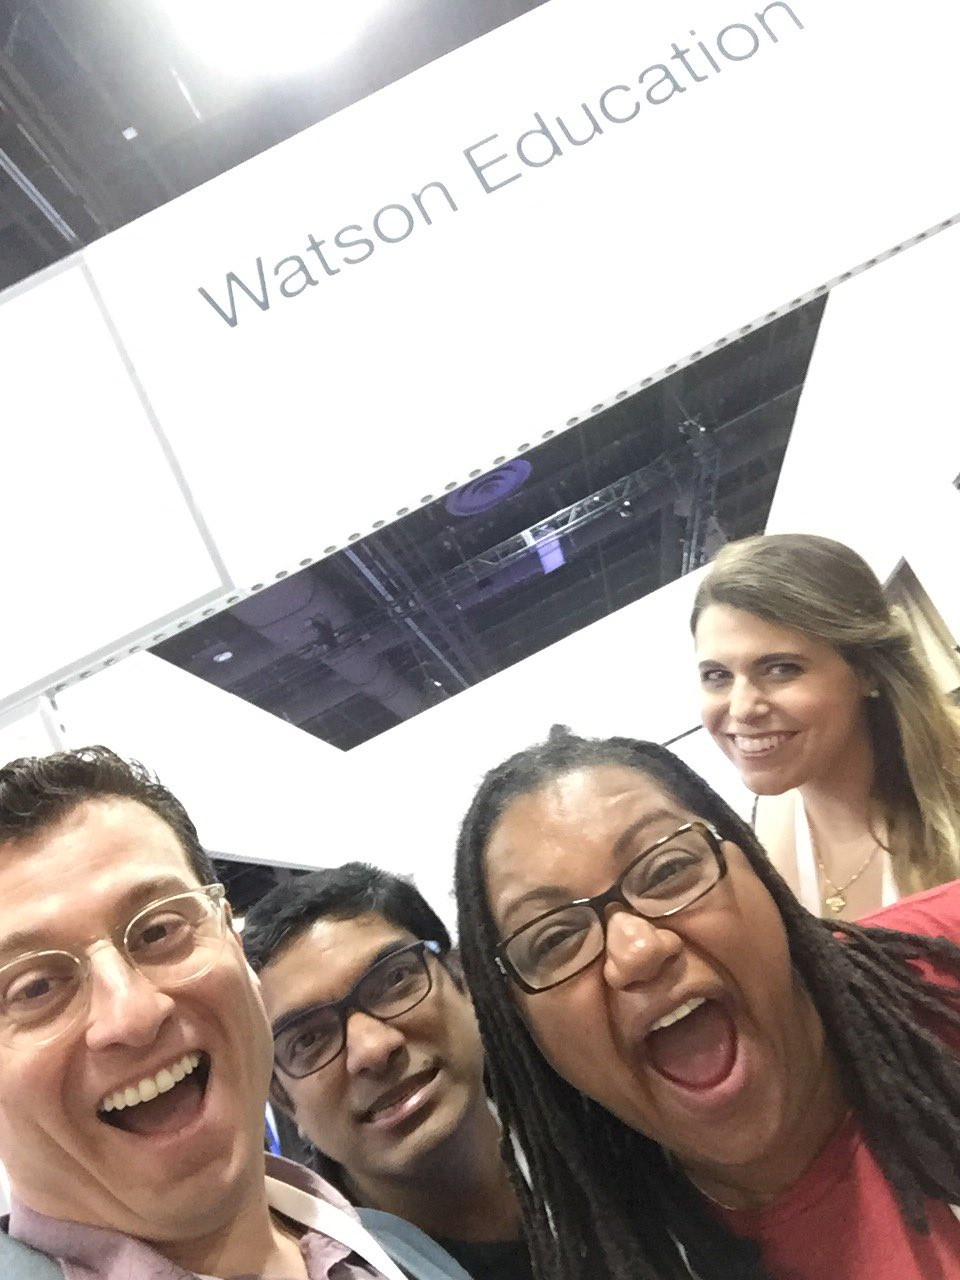 Setting up the booth at #ibmwow and #watsonedu with @beeibm @AJGopinath and @noodlenewman https://t.co/IbKiI80VWY